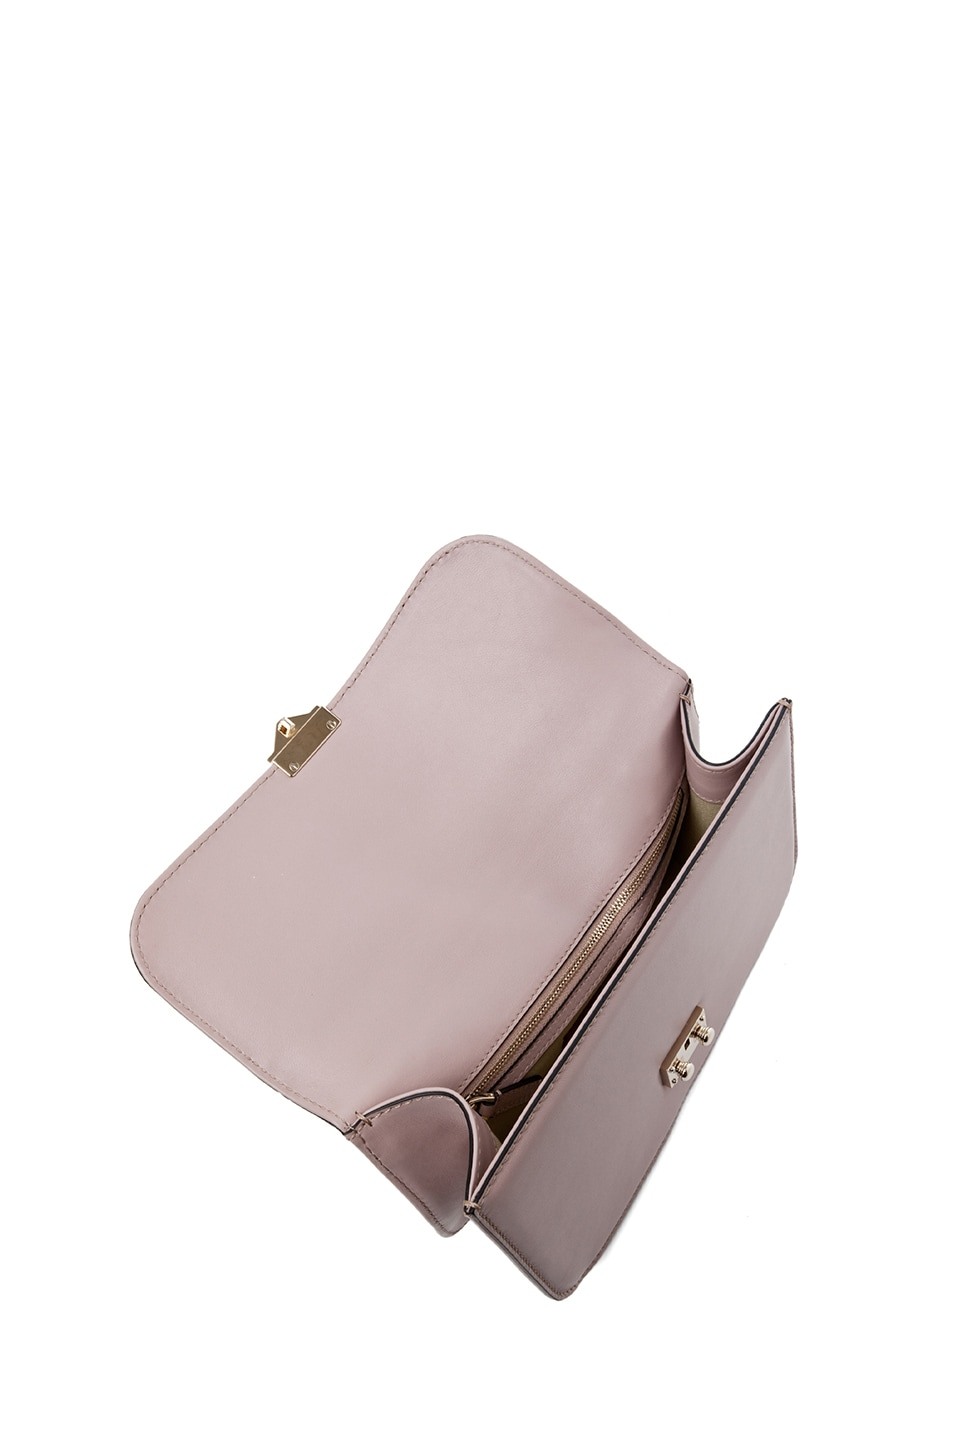 Image 4 of Valentino Medium Lock Flap Bag in Poudre